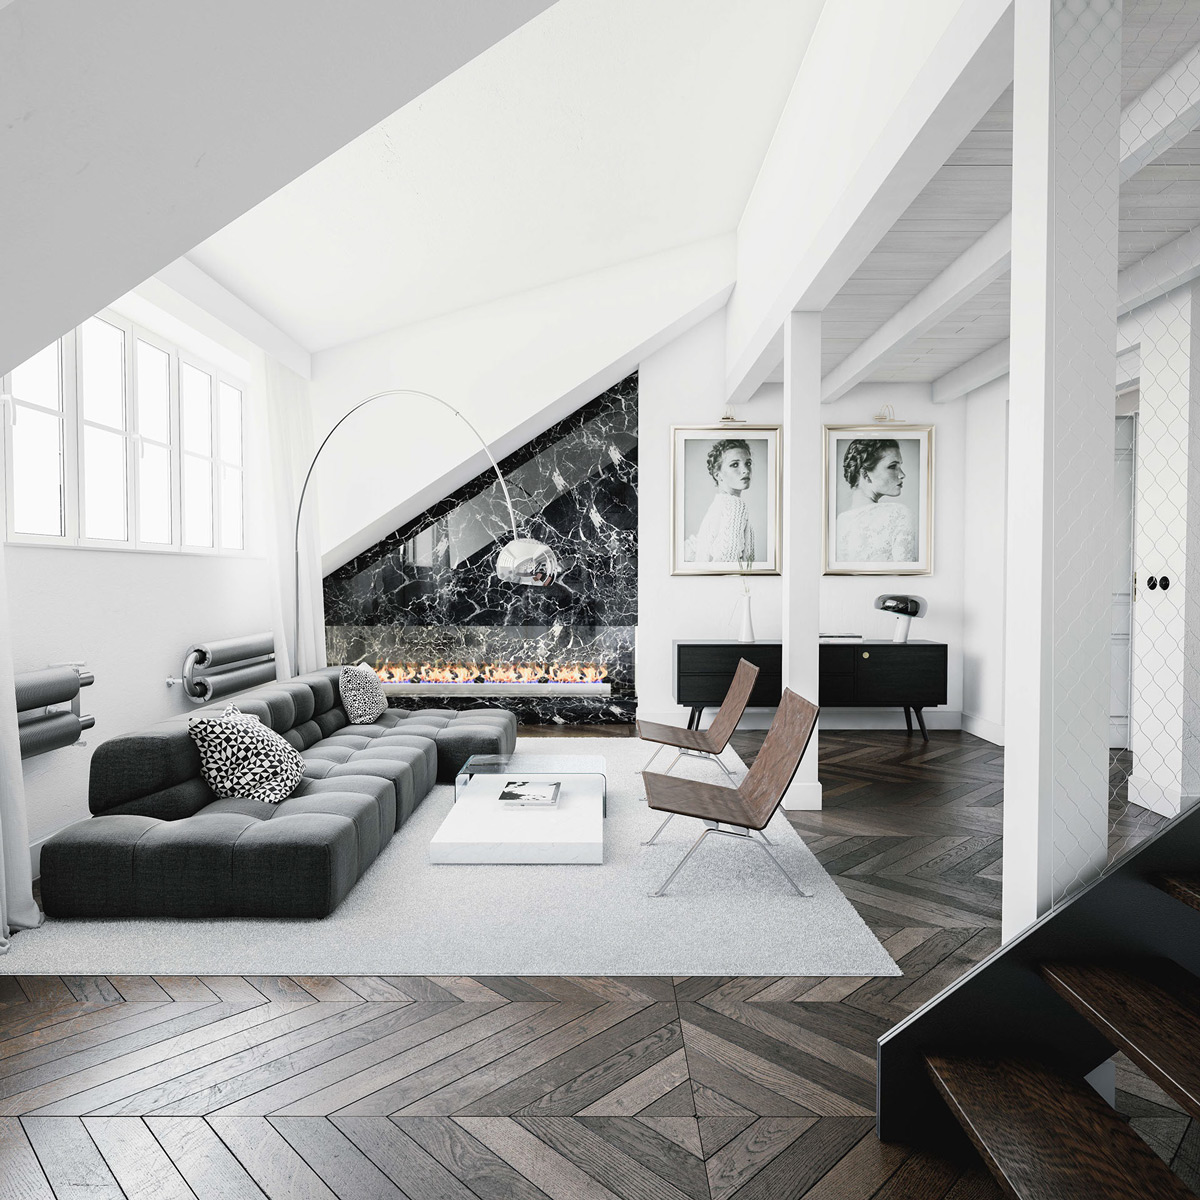 White And Grey Room: 30 Black & White Living Rooms That Work Their Monochrome Magic